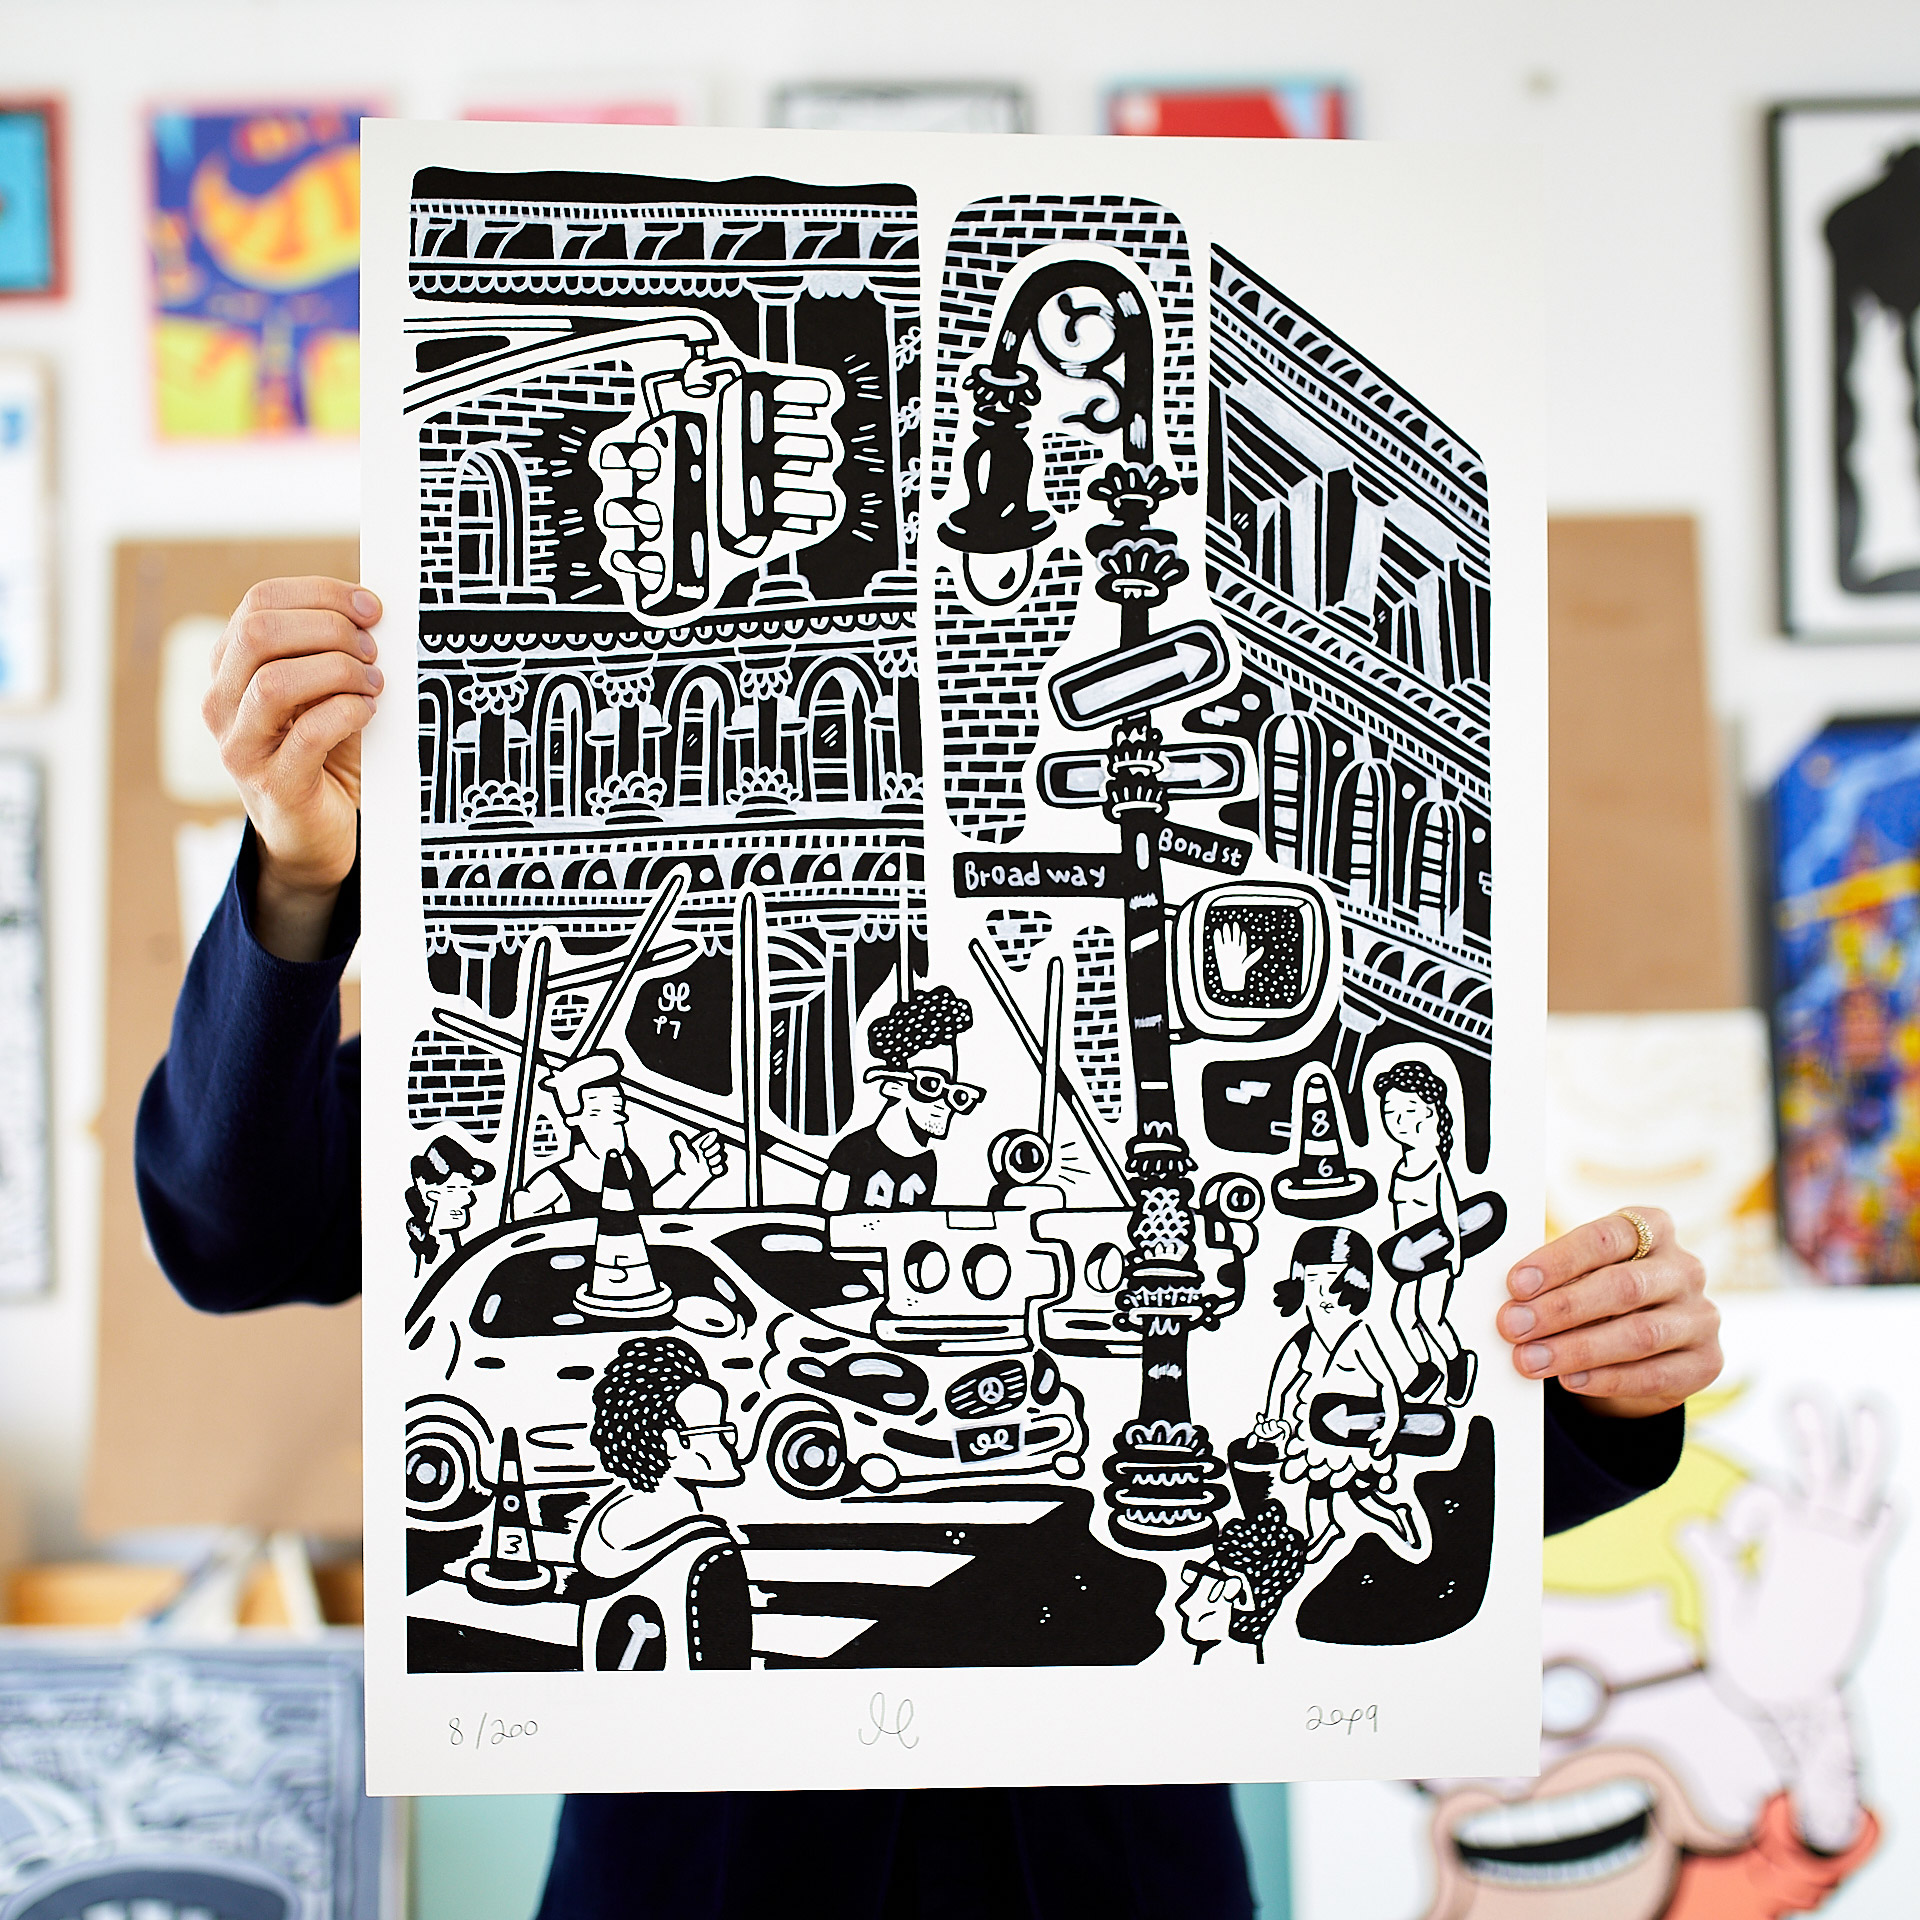 posters, giclee, family-friendly, figurative, graphical, illustrative, pop, architecture, everyday life, humor, patterns, people, black, grey, white, ink, paper, amusing, architectural, black-and-white, copenhagen, danish, decorative, interior, interior-design, modern, modern-art, nordic, pop-art, posters, scandinavien, street-art, Buy original high quality art. Paintings, drawings, limited edition prints & posters by talented artists.